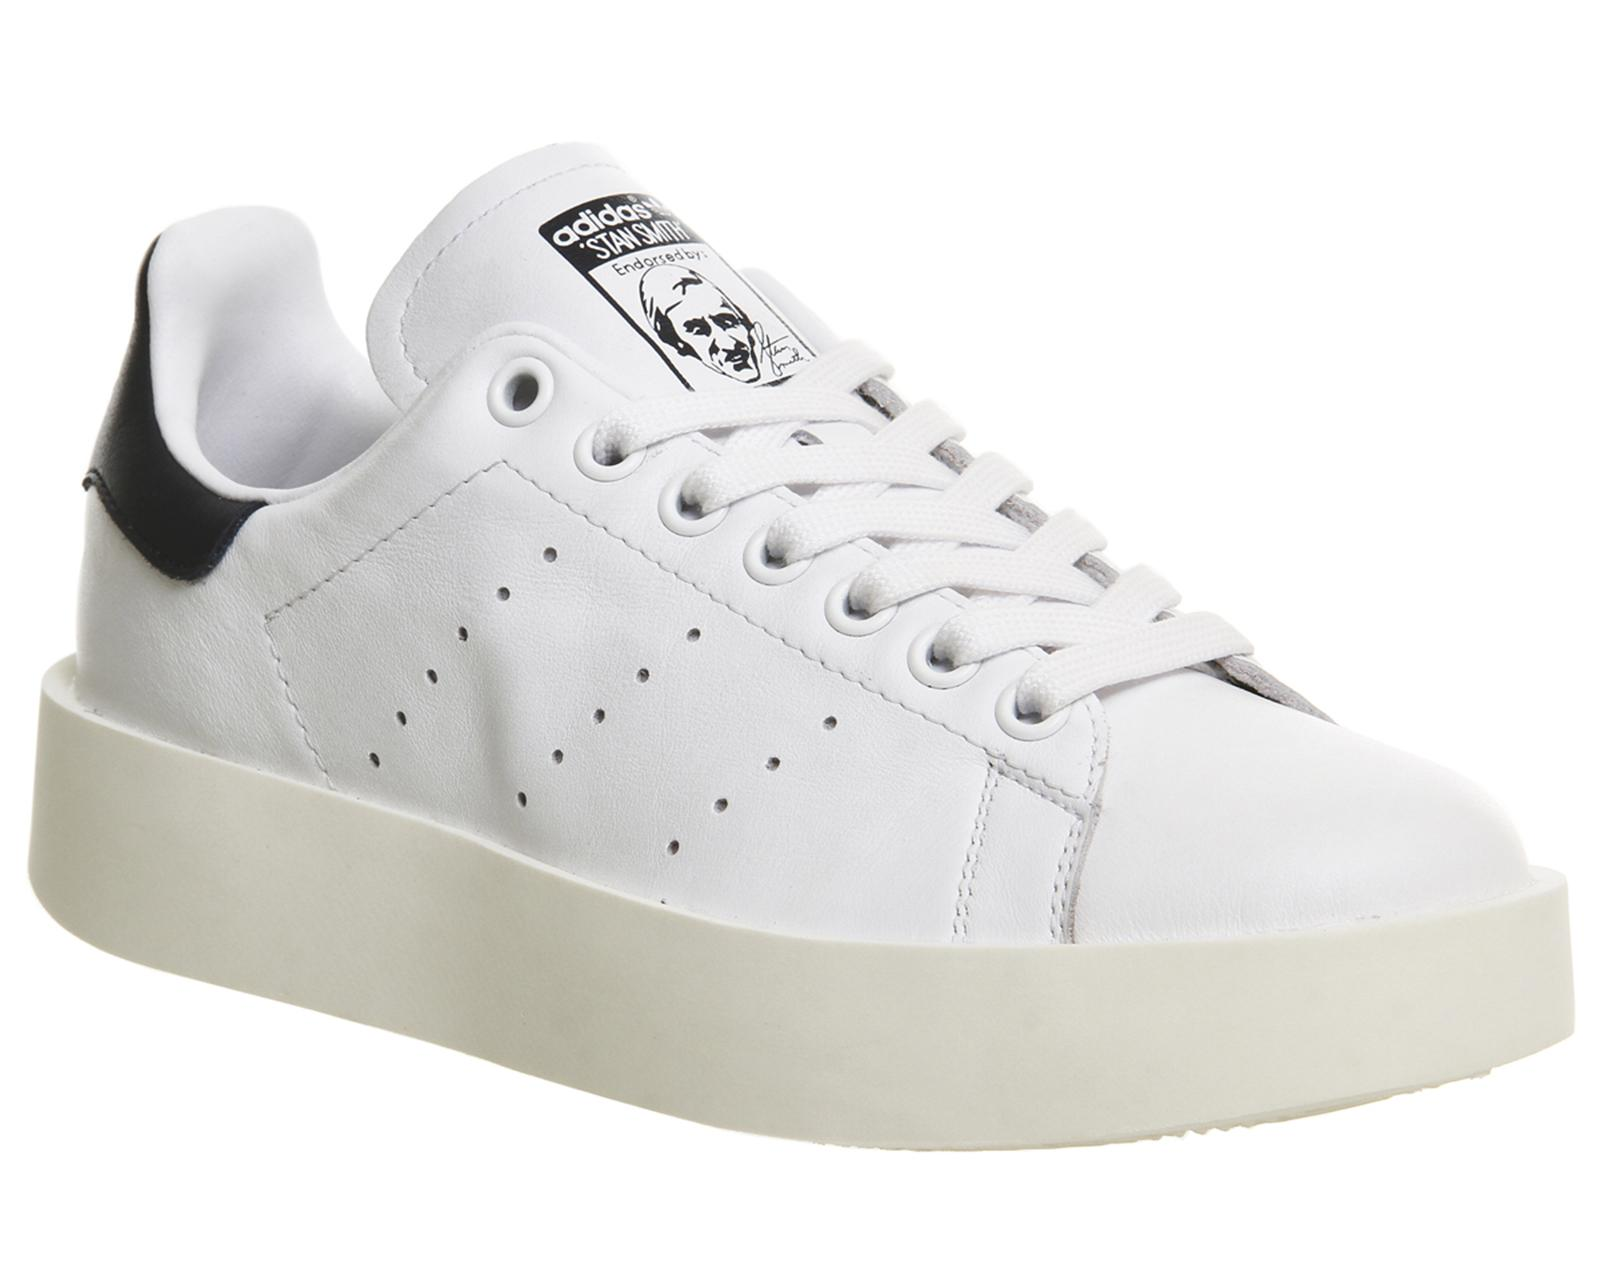 adidas Originals Leather Stan Smith Bold in White for Men - Lyst